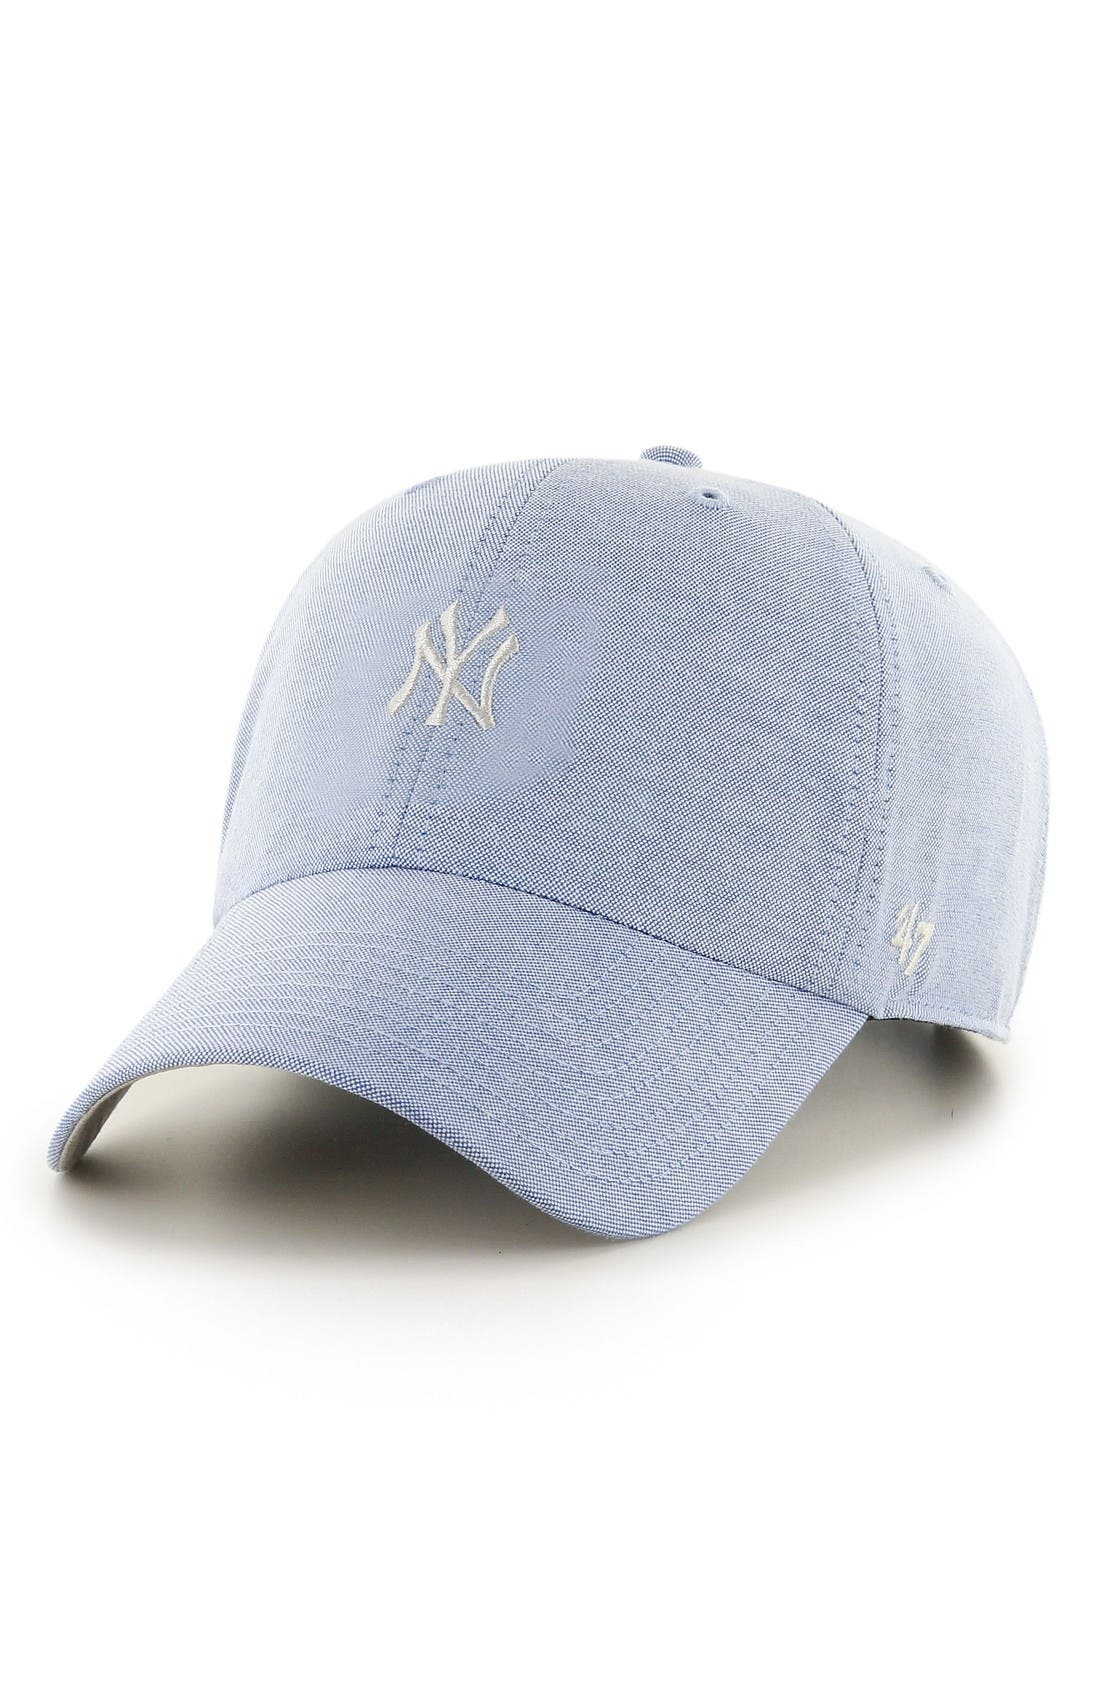 Alternate Image 1 Selected - '47 Monument Salute Clean Up NY Yankees Baseball Cap